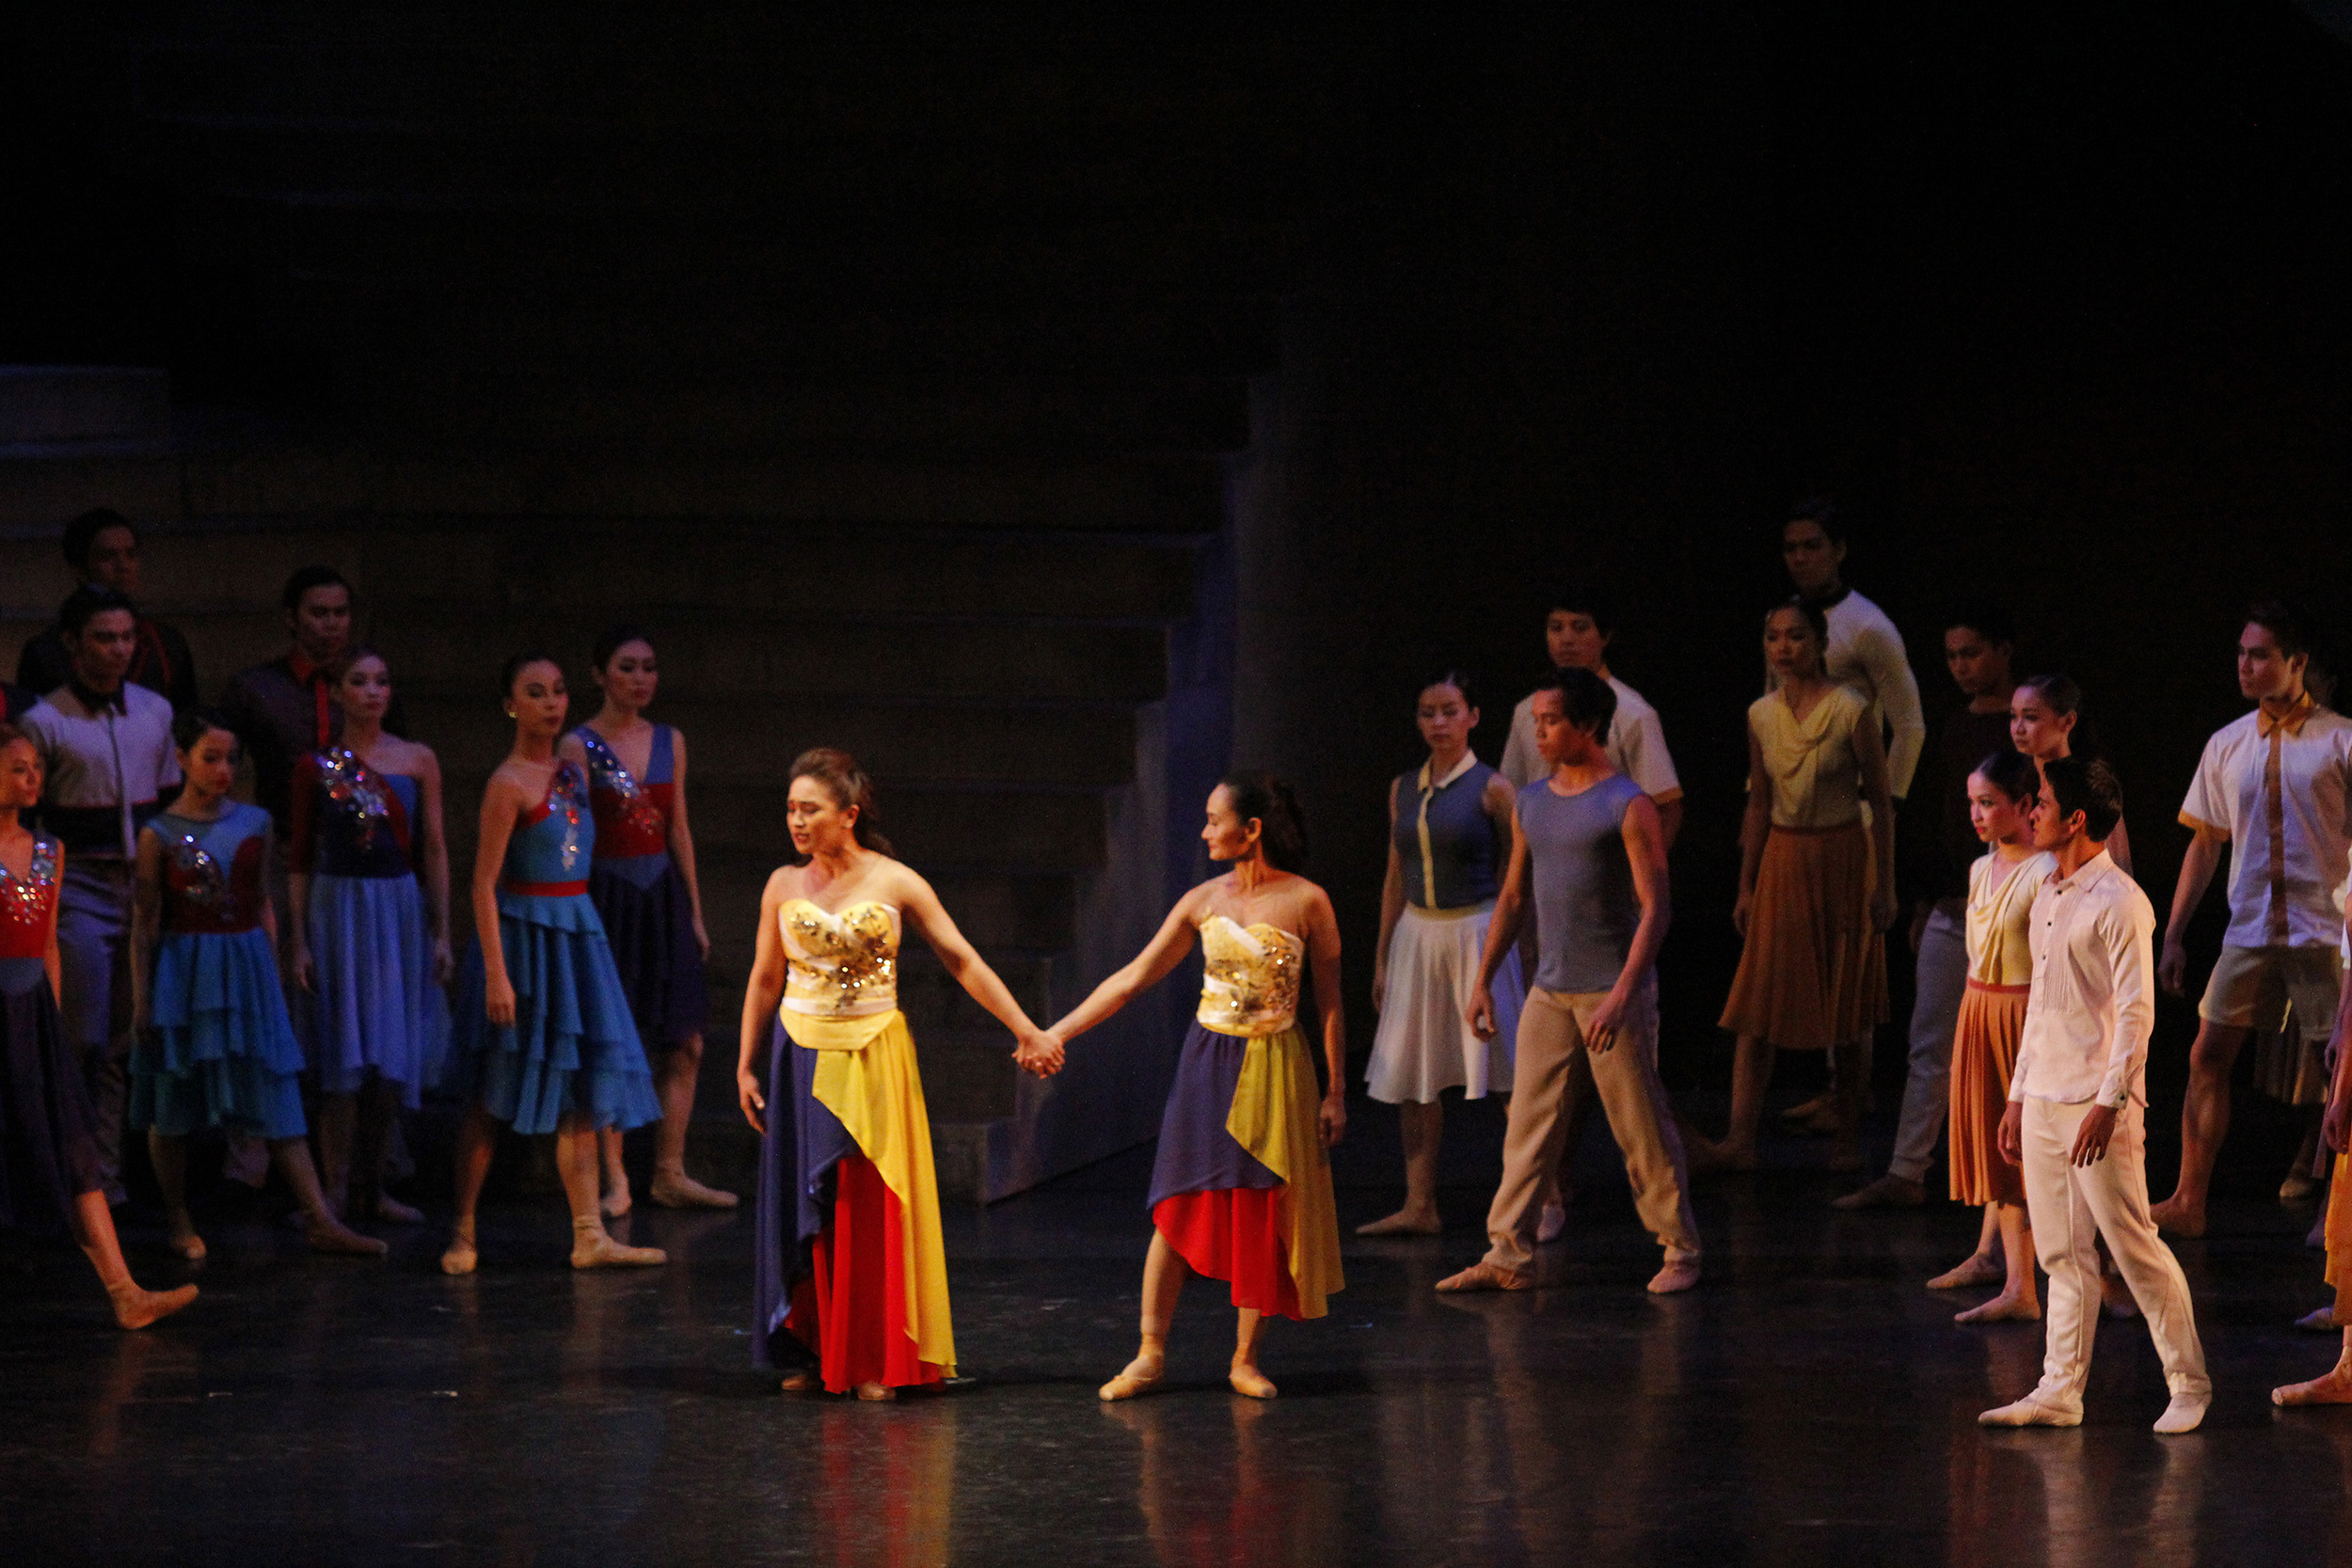 Inang Bayan, represented by Lisa Macuja-Elizalde (dance) and Joanna Ampil (song), is appropriately swathed in the colors of the Philippine flag.